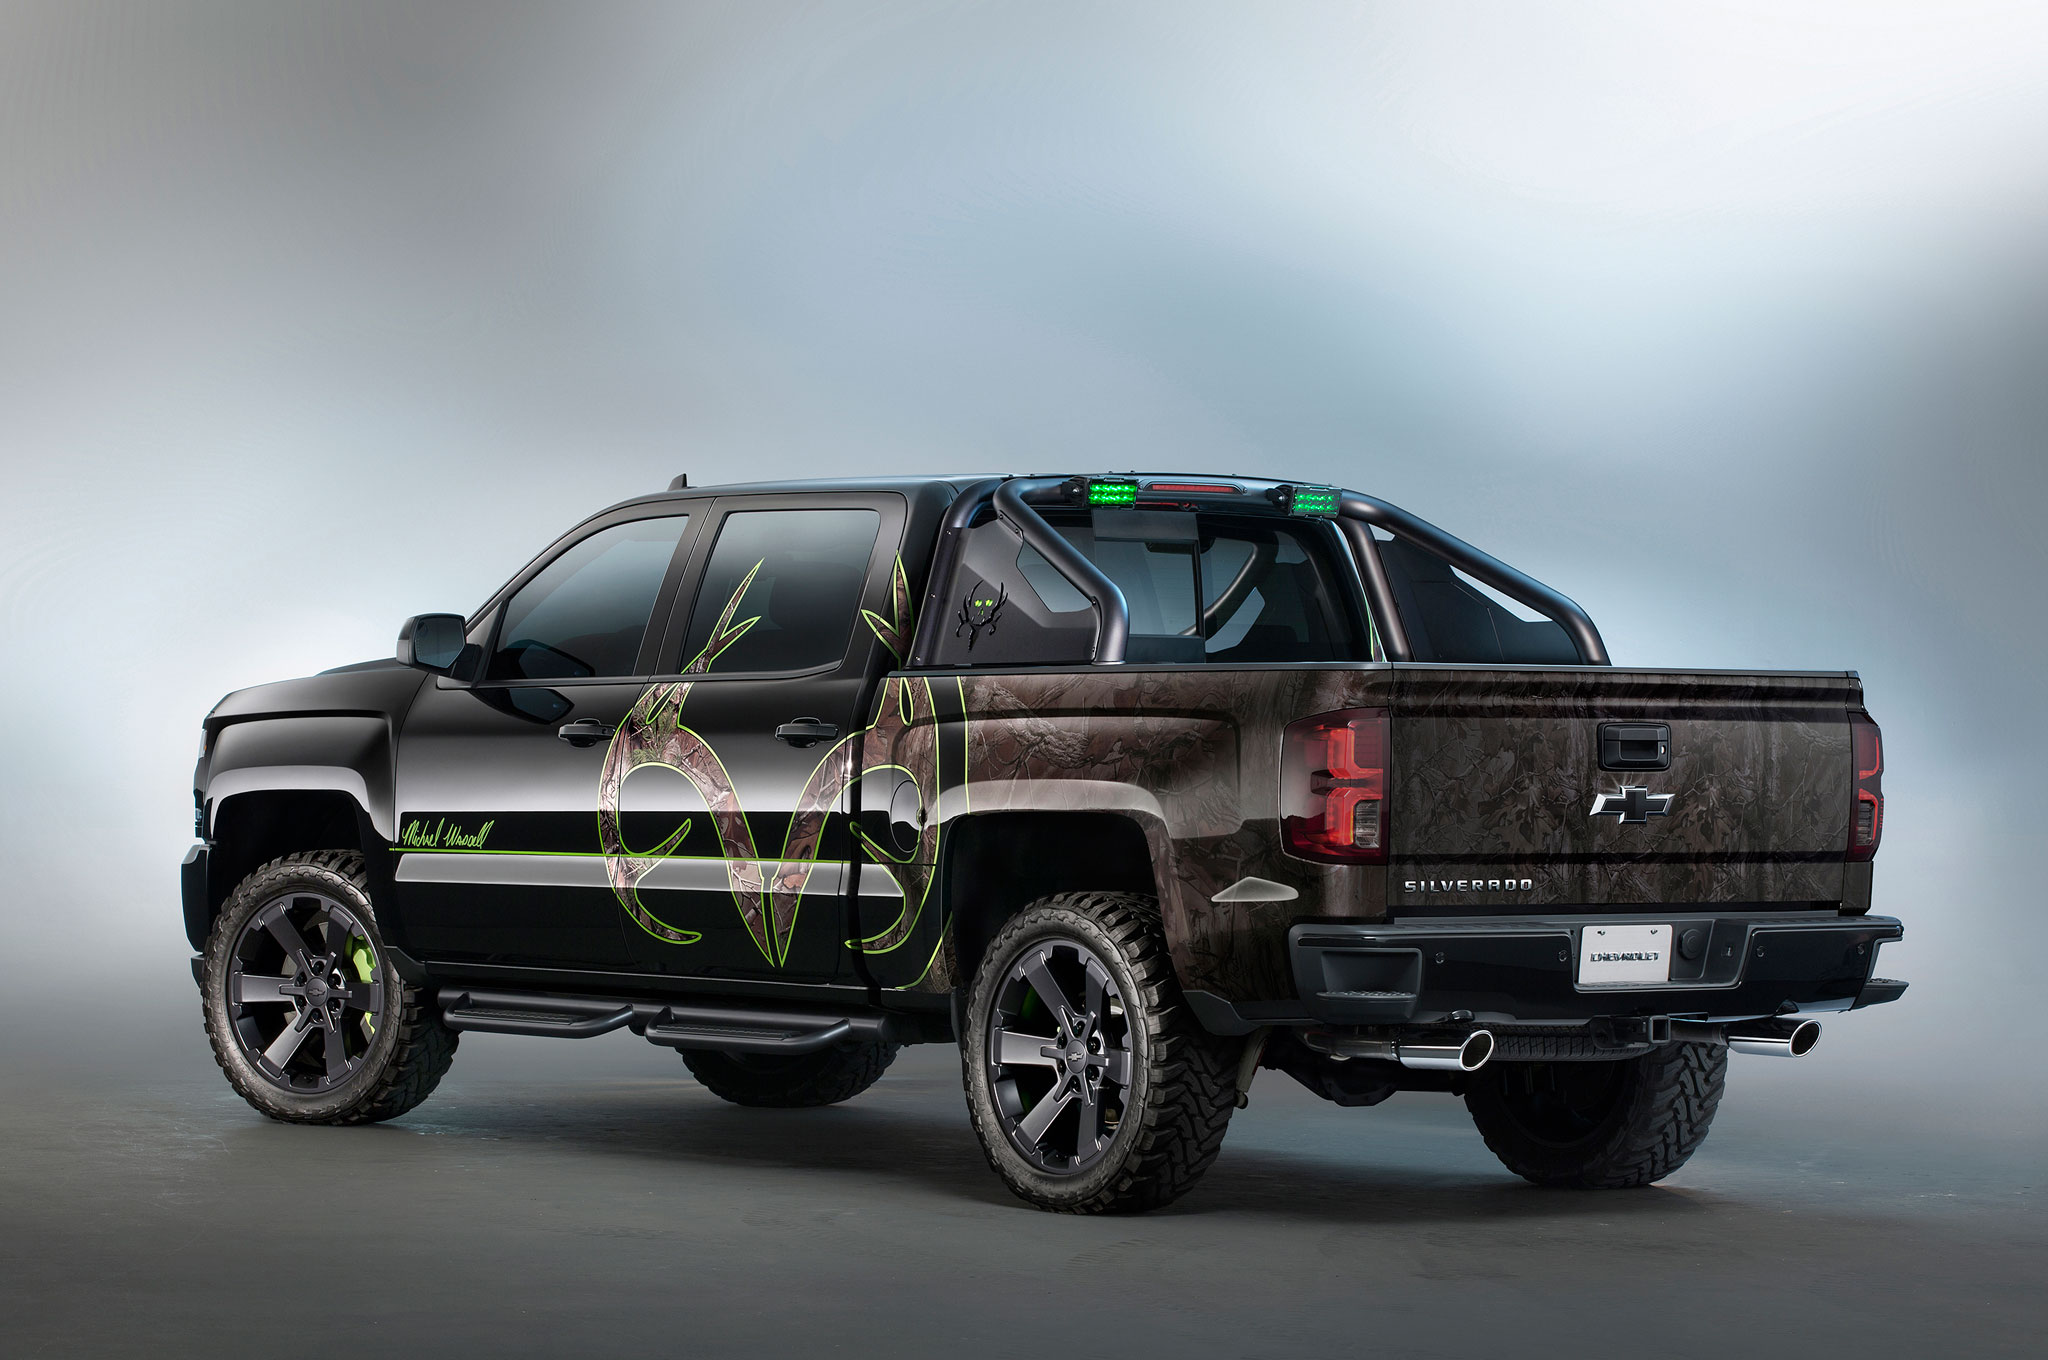 2016 chevrolet silverado adds hunting inspired realtree edition. Black Bedroom Furniture Sets. Home Design Ideas